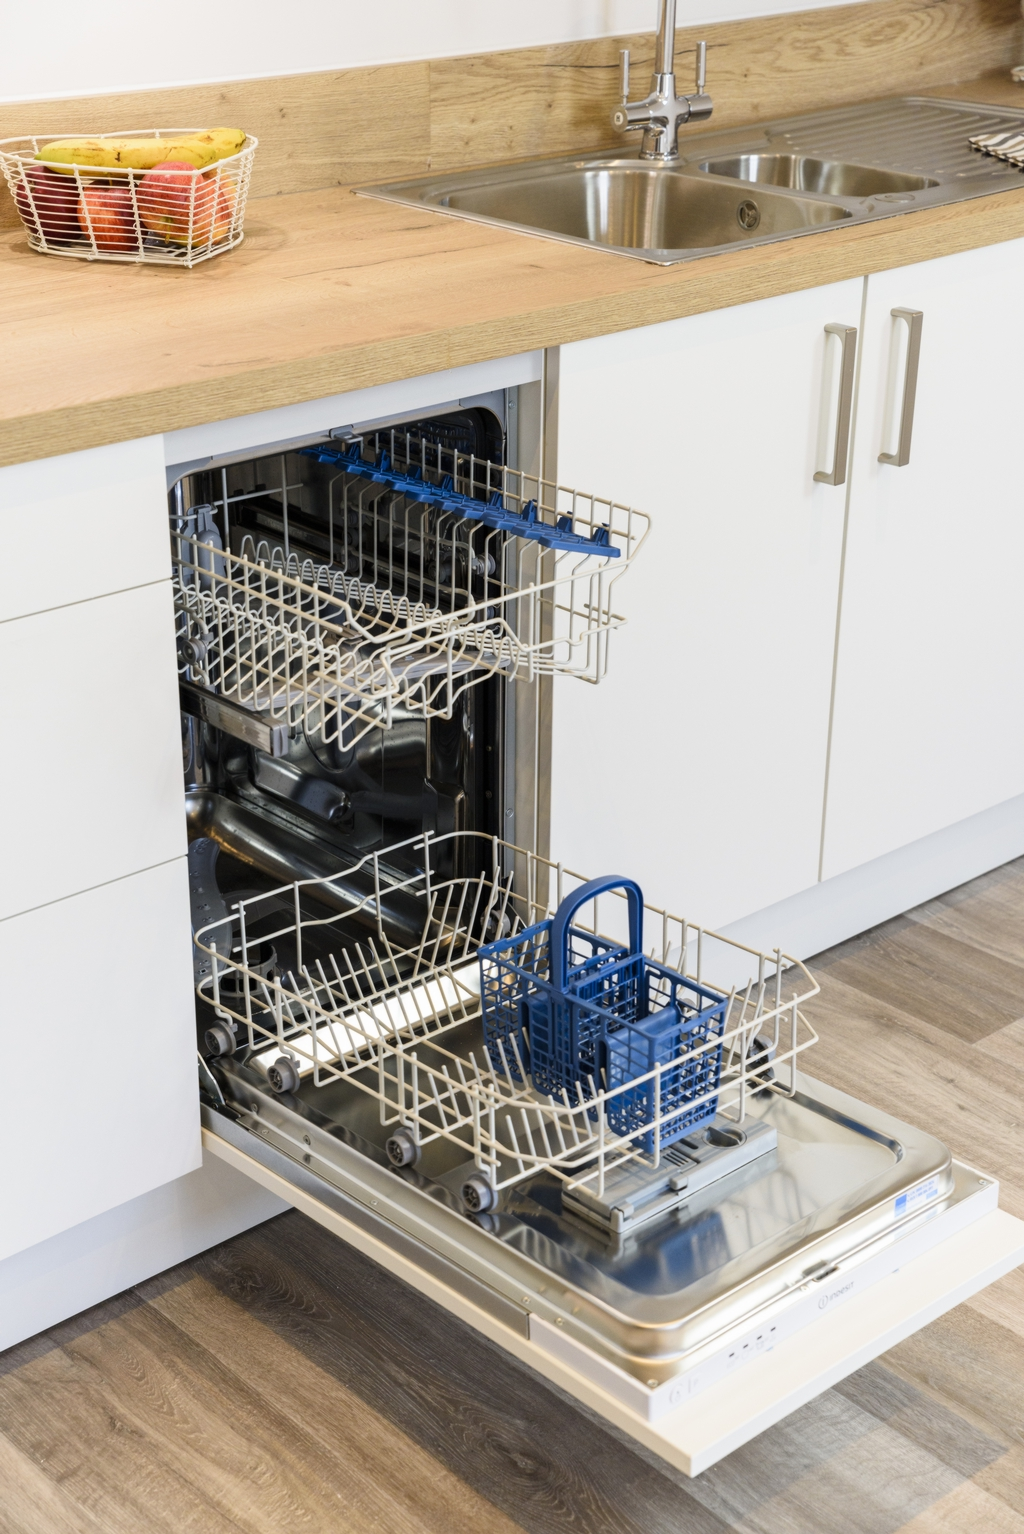 Dishwasher -